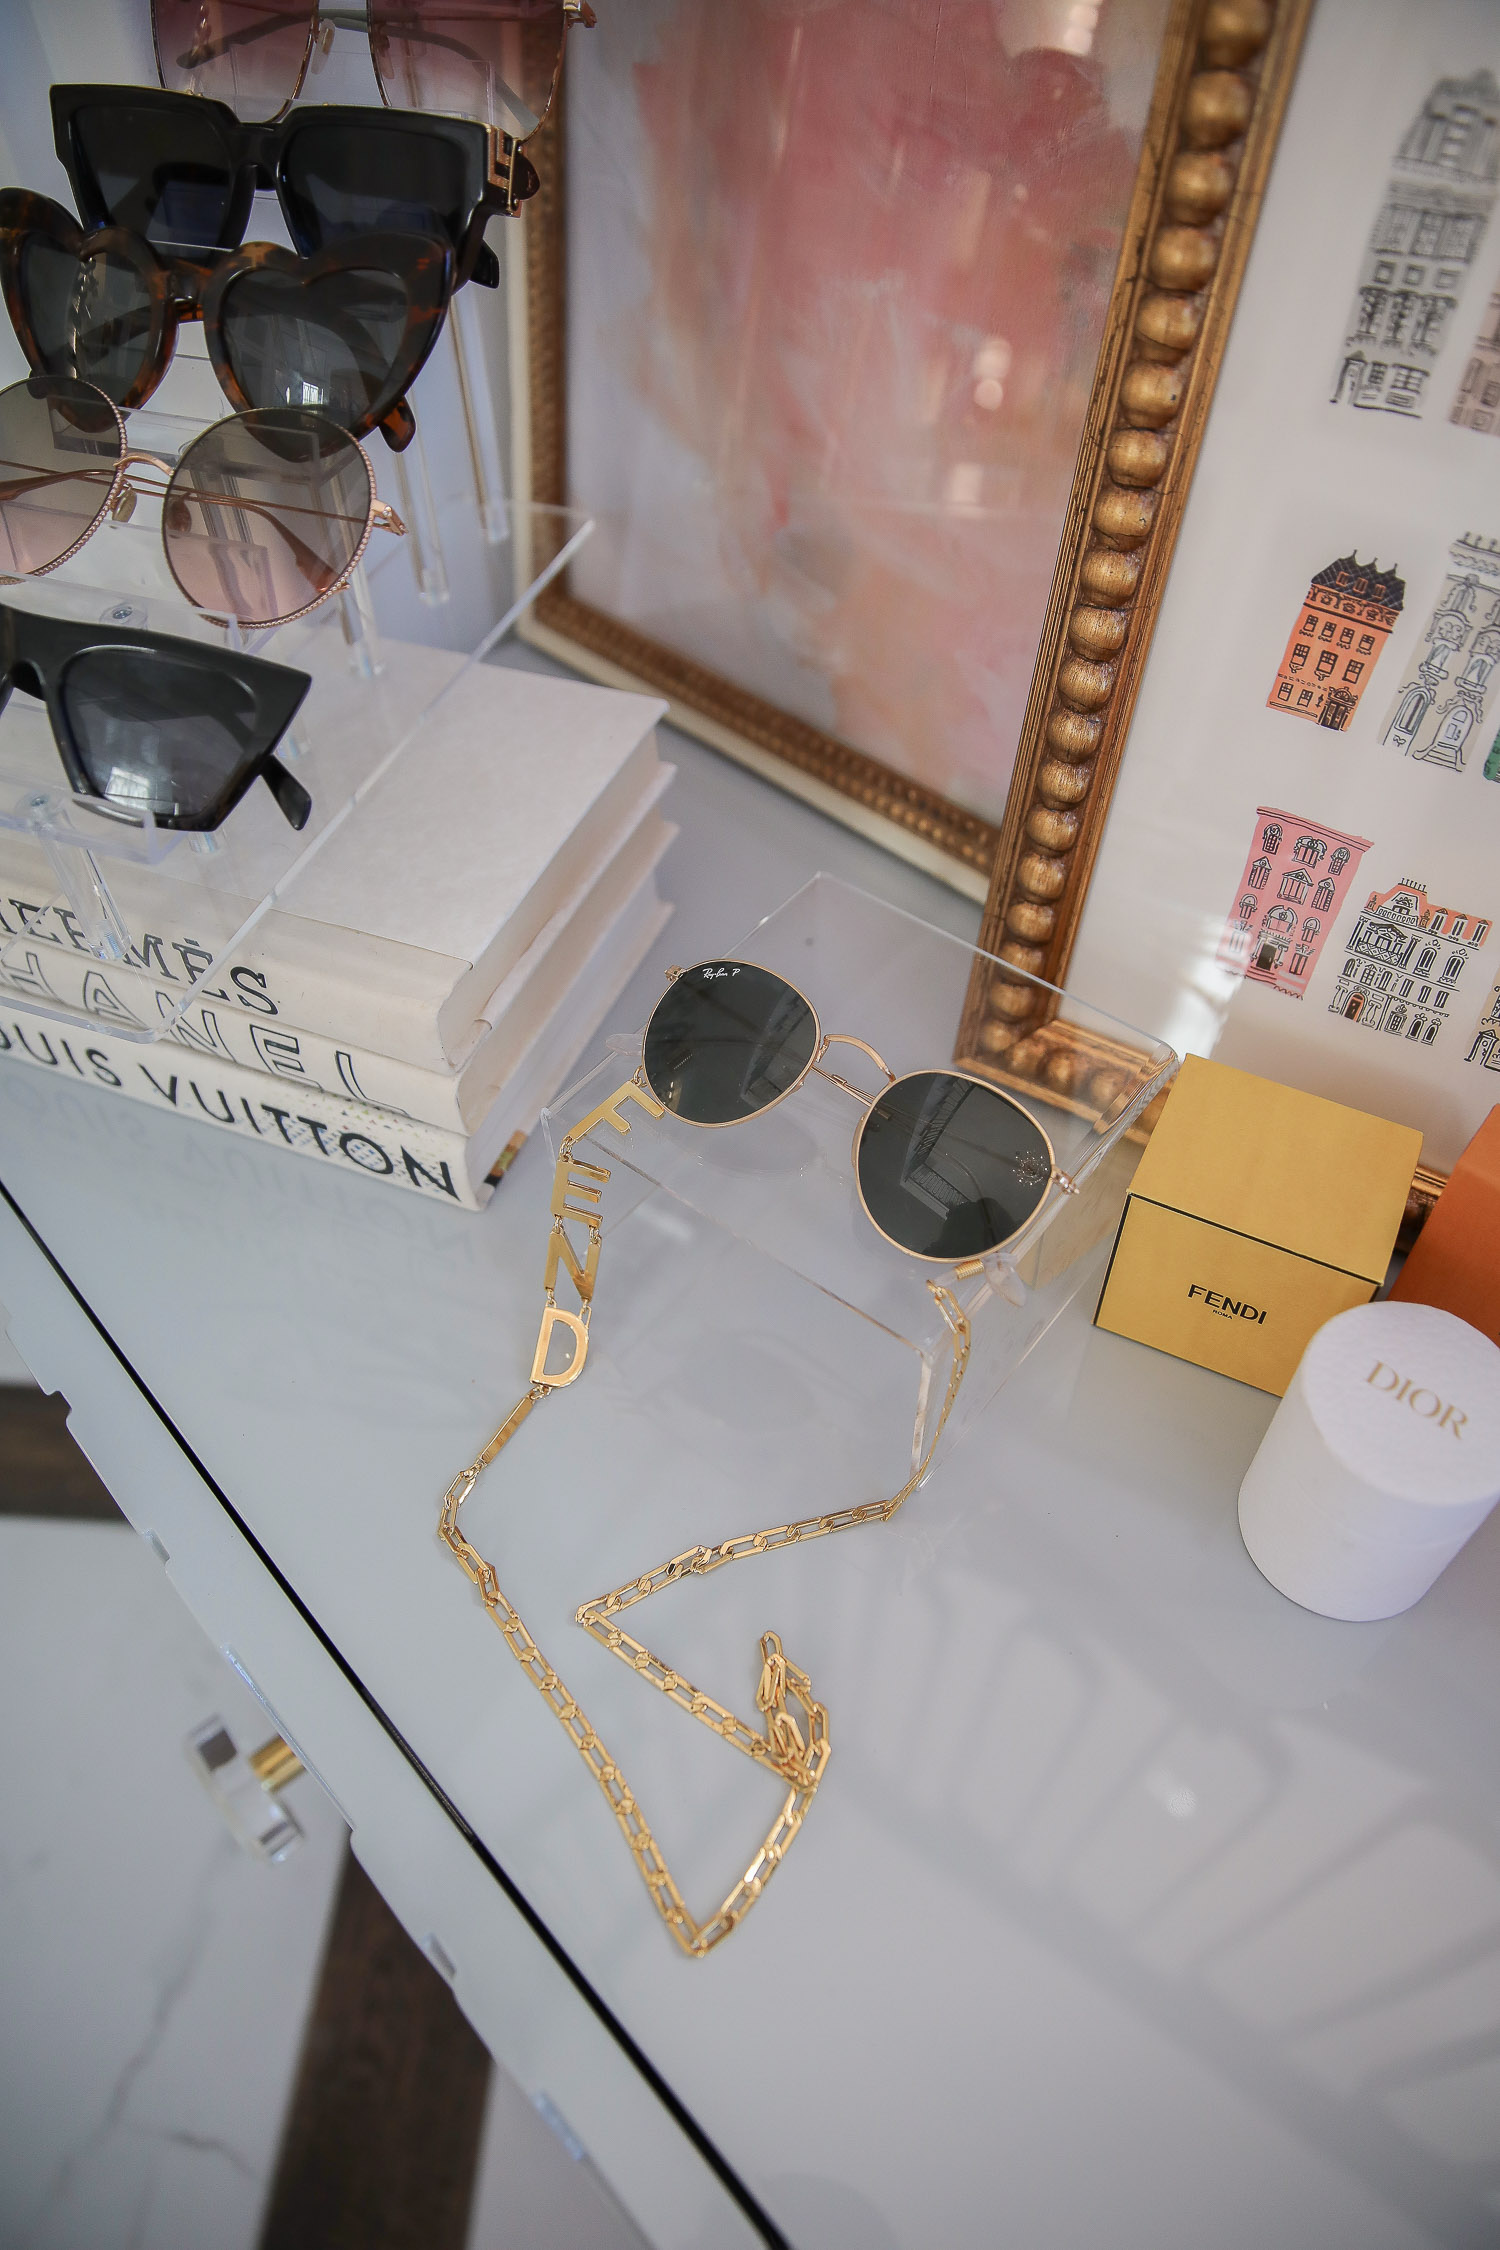 amazon must haves summer 2020, amazon home decor blog post, amazon luxury must haves, two story closet pinterest, emily gemma, closet organization | Instagram Recap by popular US life an style blog, The Sweetest Thing: image of a Fendi sunglasses chain, Acrylic sunglasses stand, Nordstrom stacked books, Amazon sunglasses, Gucci, Sunglasses, Dior Sunglasses, YSL sunglasses, Louis Vuitton sunglasses, Dior candle, and Parisian building art.